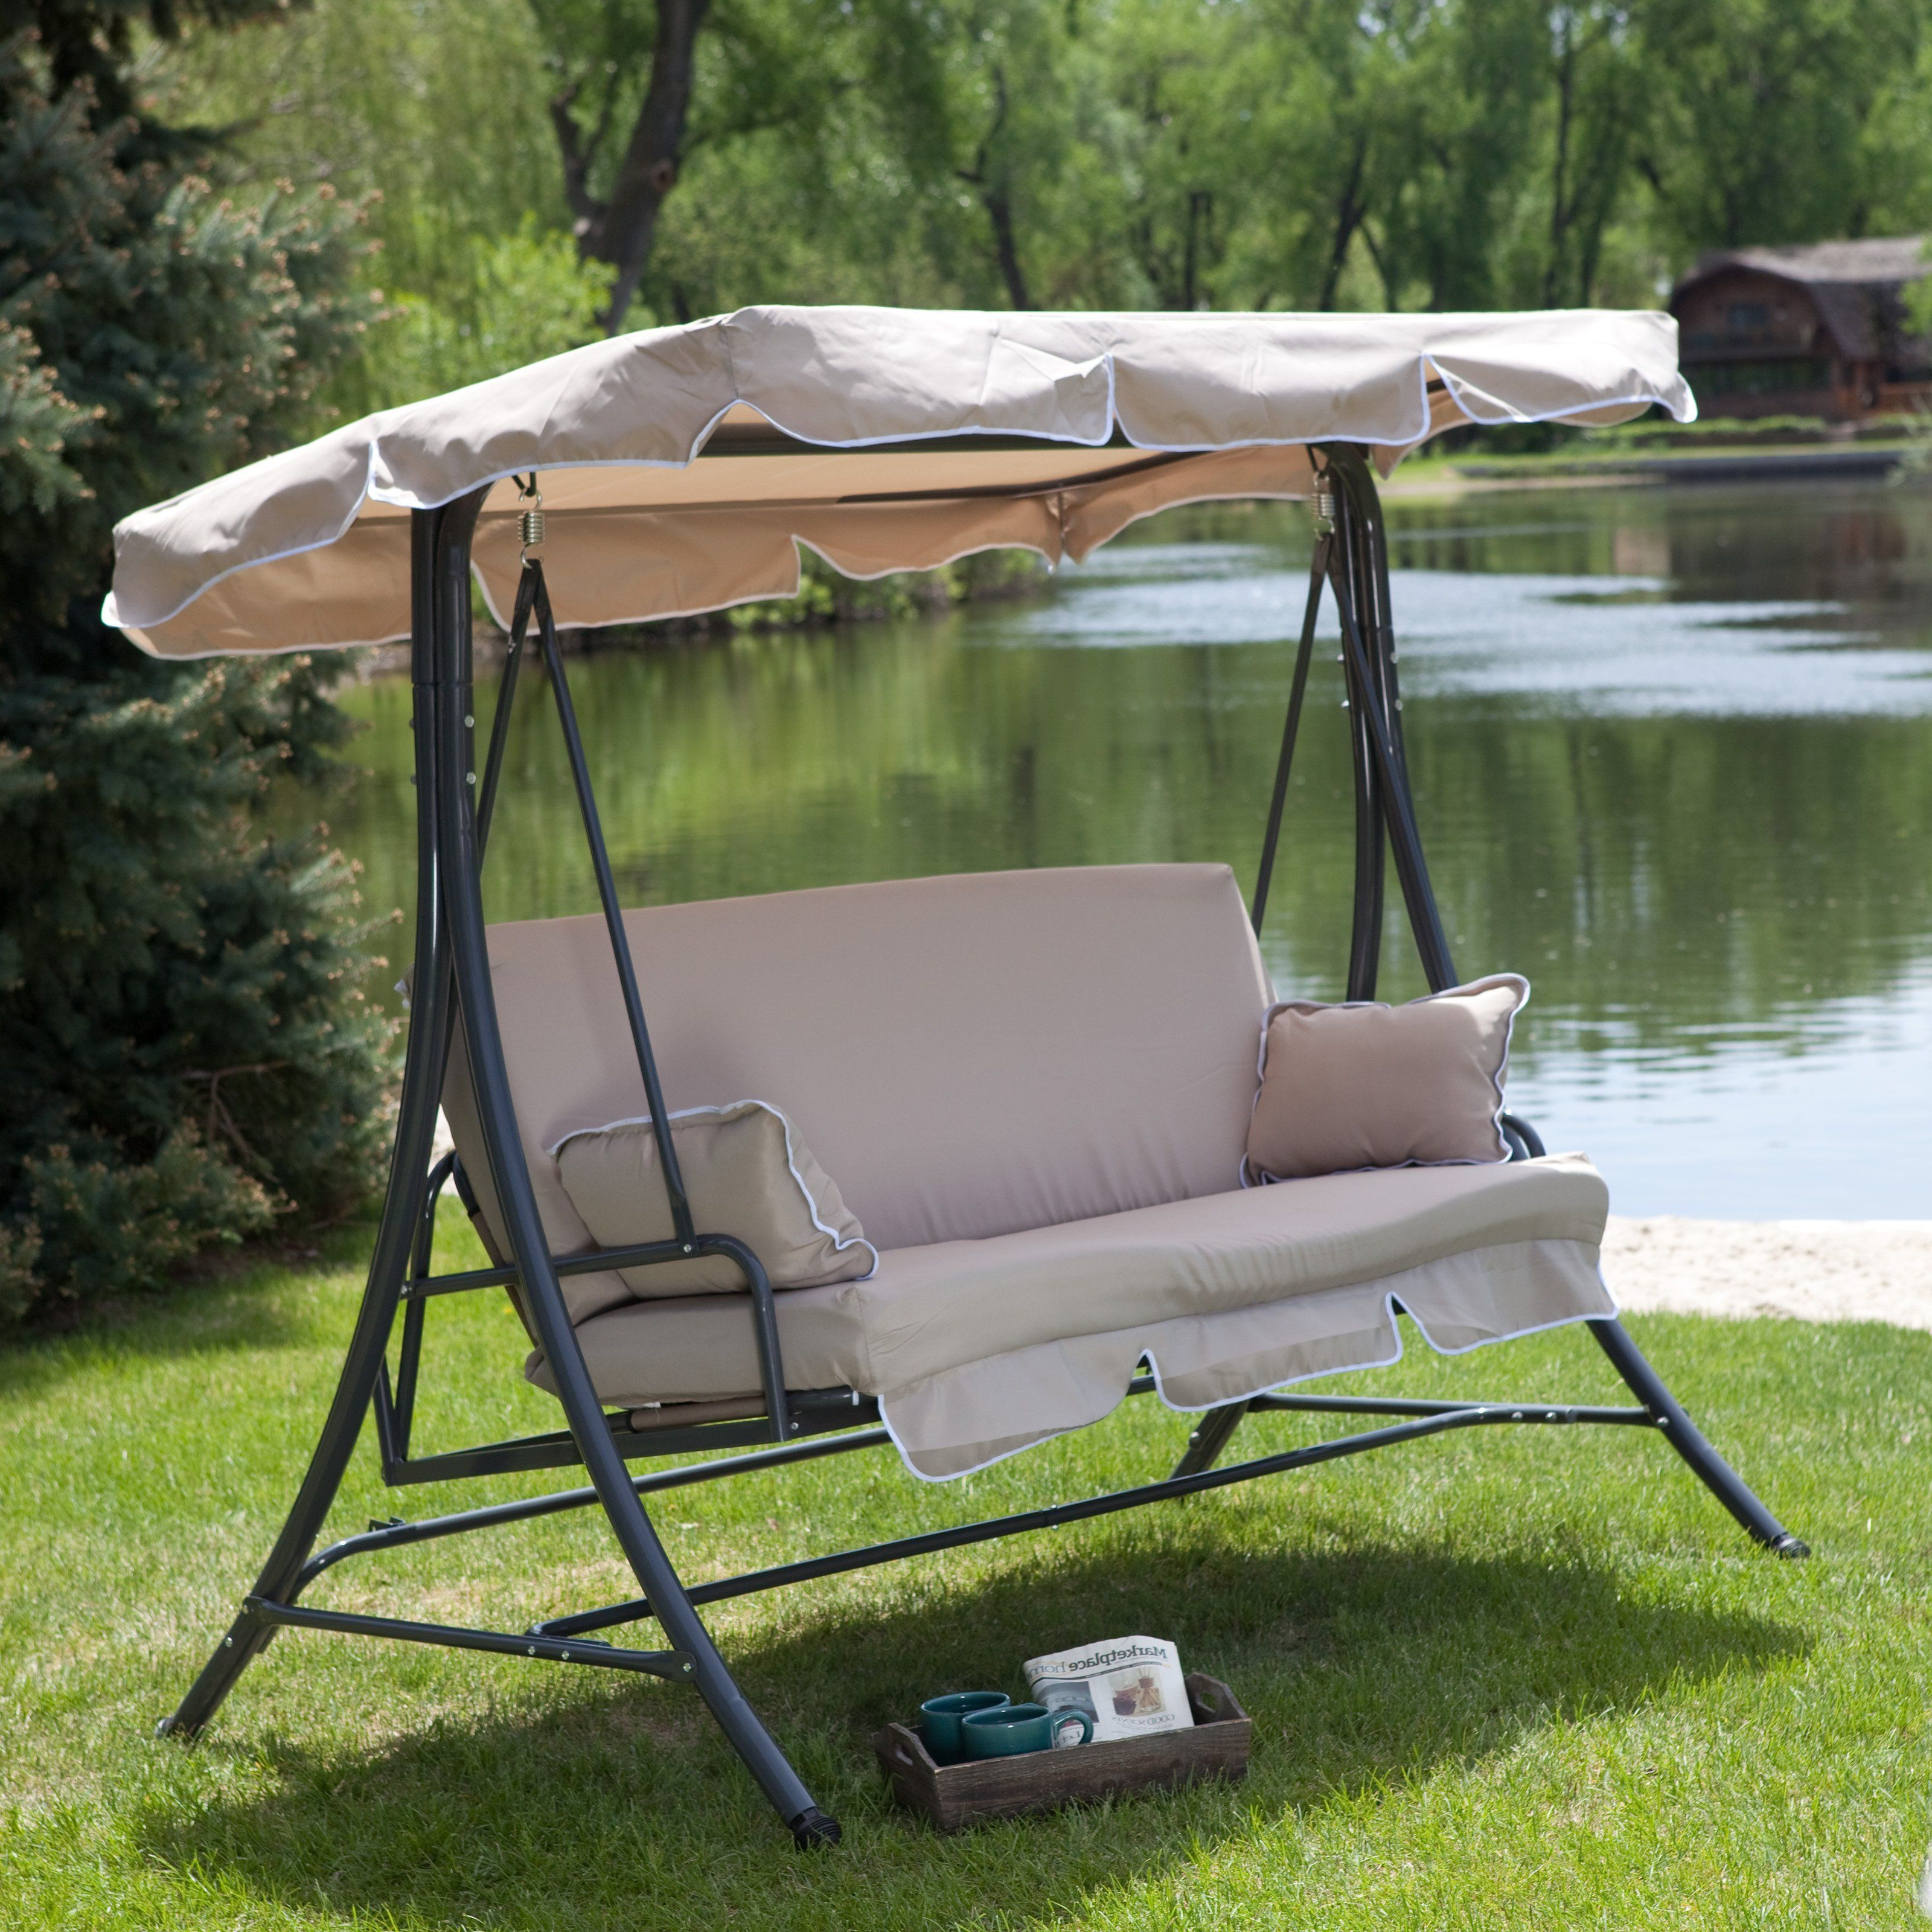 Reclining Patio swingYES PLEASE!! Have to have it. Lazy